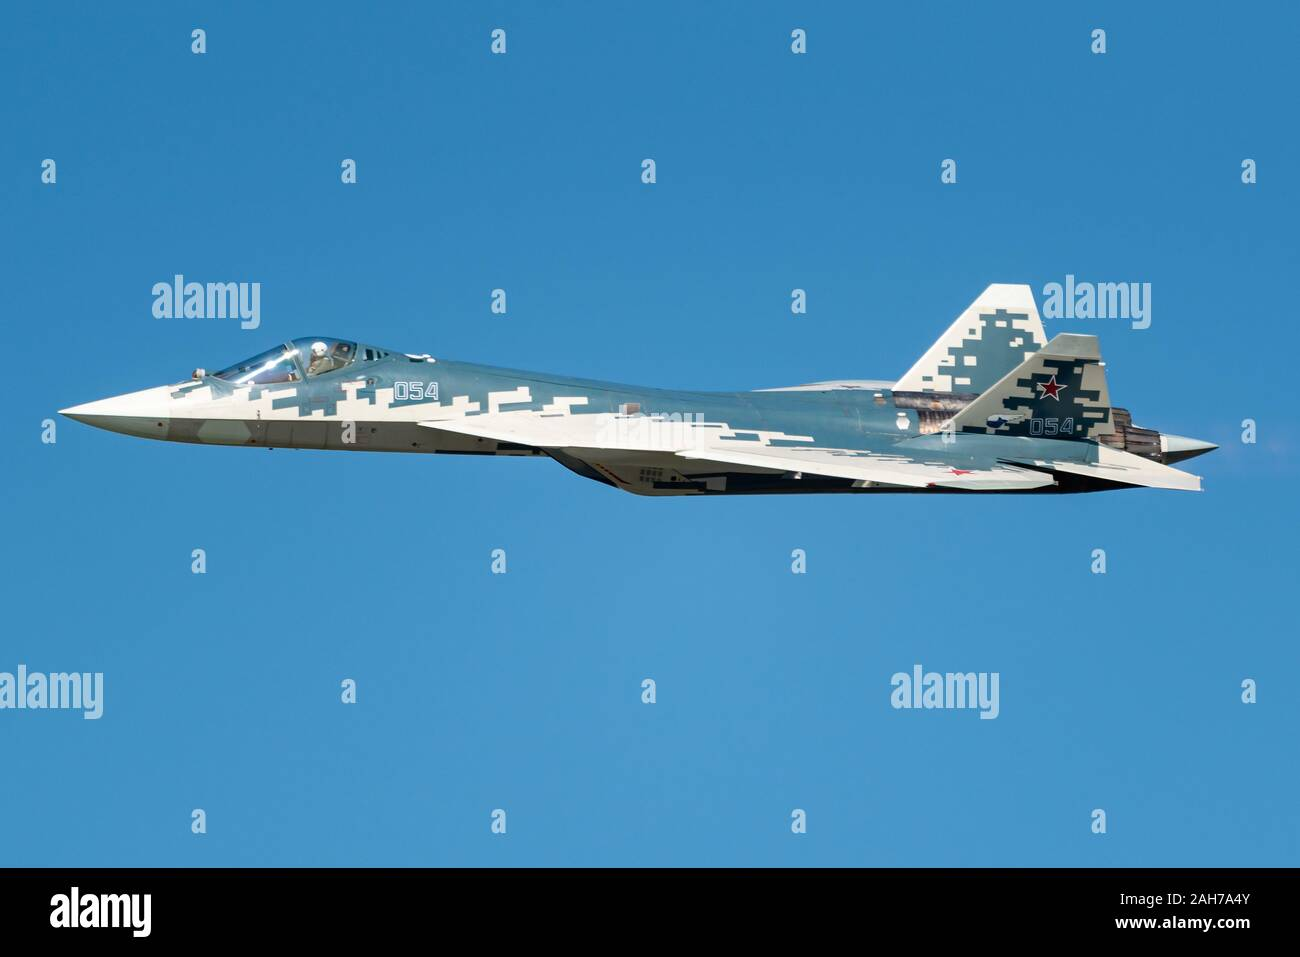 The Sukhoi Su-57 stealth fighter jet of the Russian Air Force at the MAKS 2019 airshow. Stock Photo